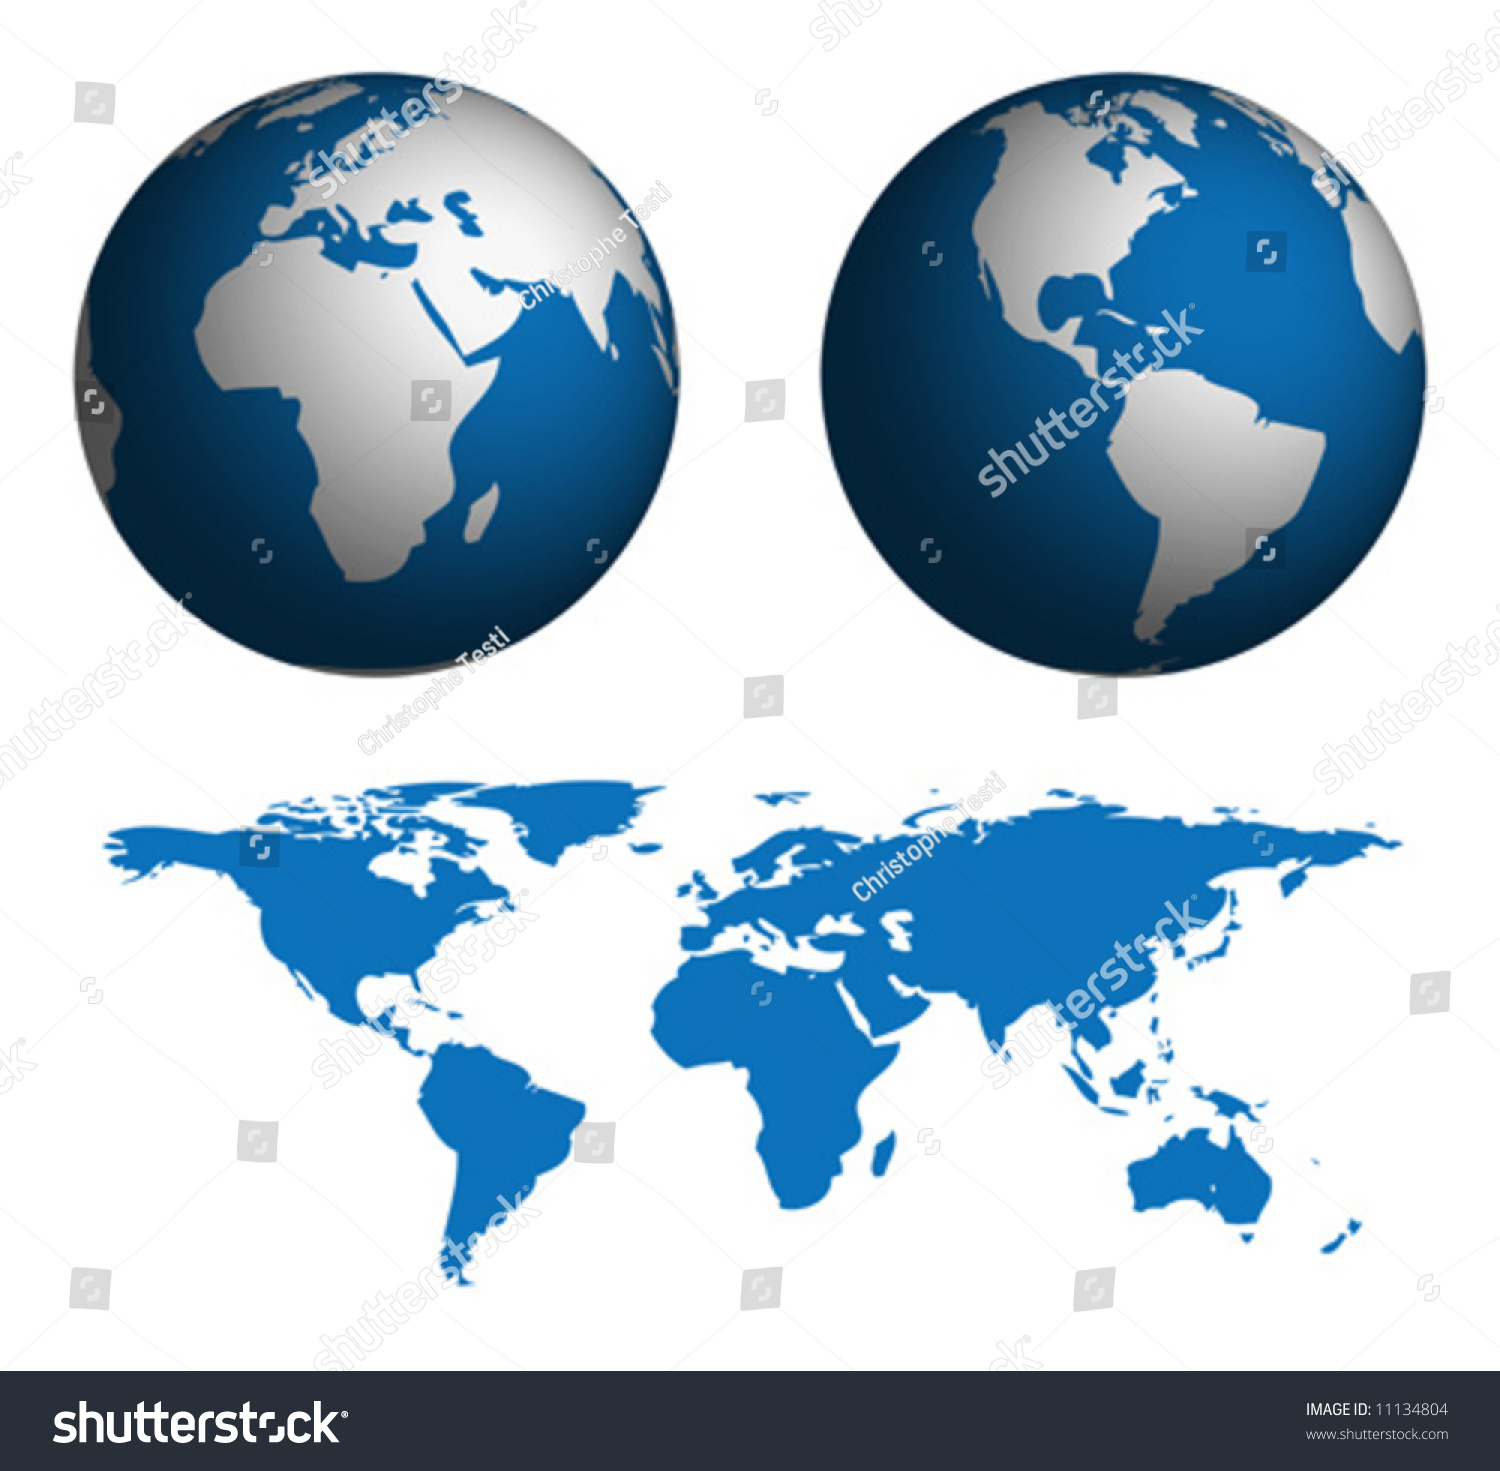 Globe map world map manually traced stock vector 11134804 globe and map of the world map was manually traced in illustrator from public domain gumiabroncs Images